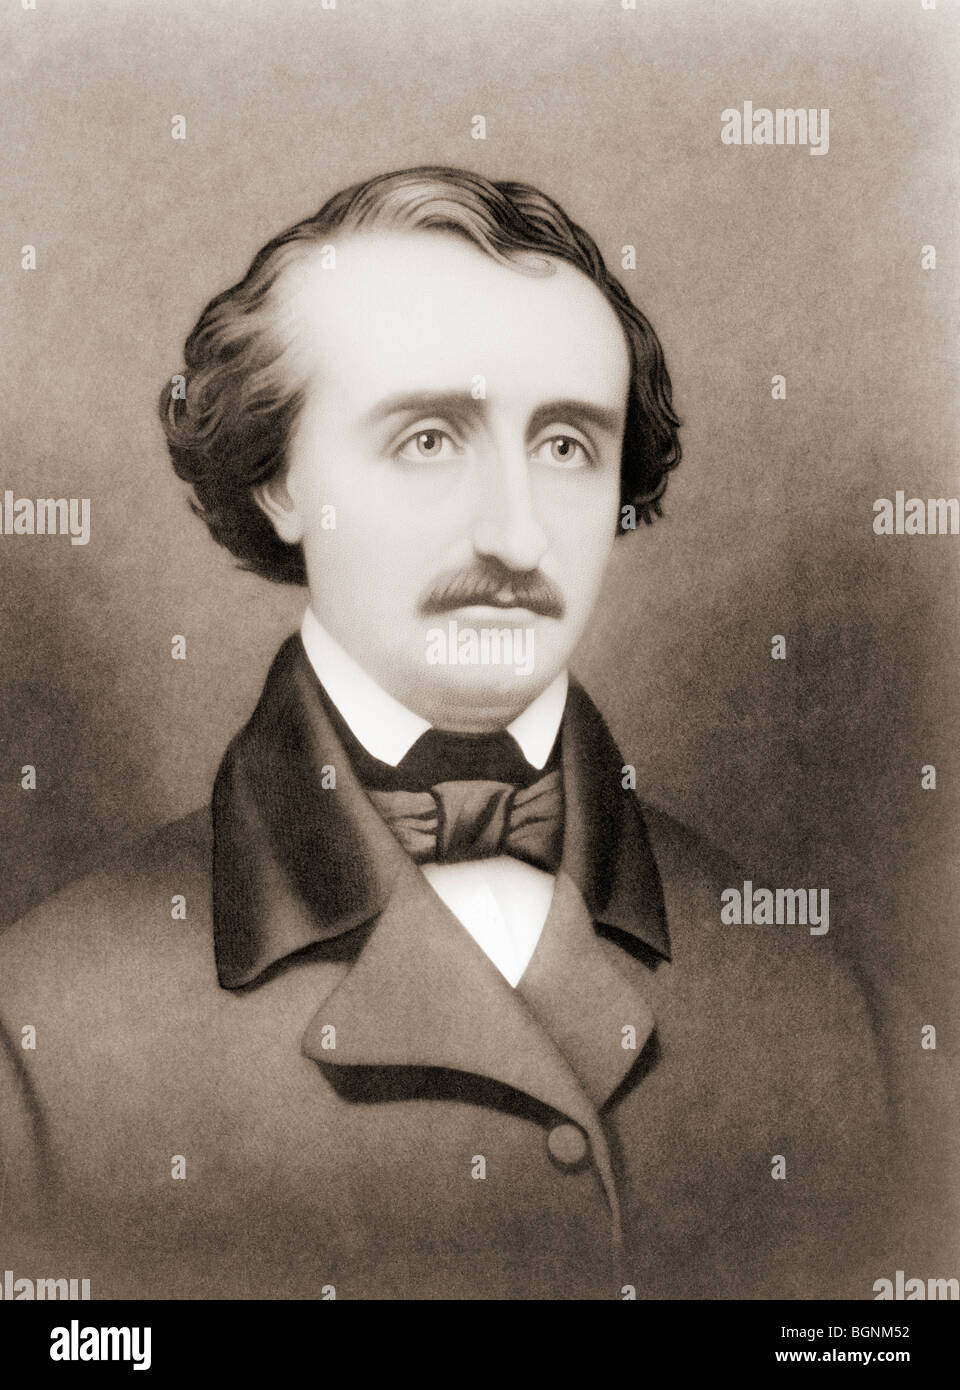 Edgar Allan Poe, 1809 to 1849. American writer. - Stock Image